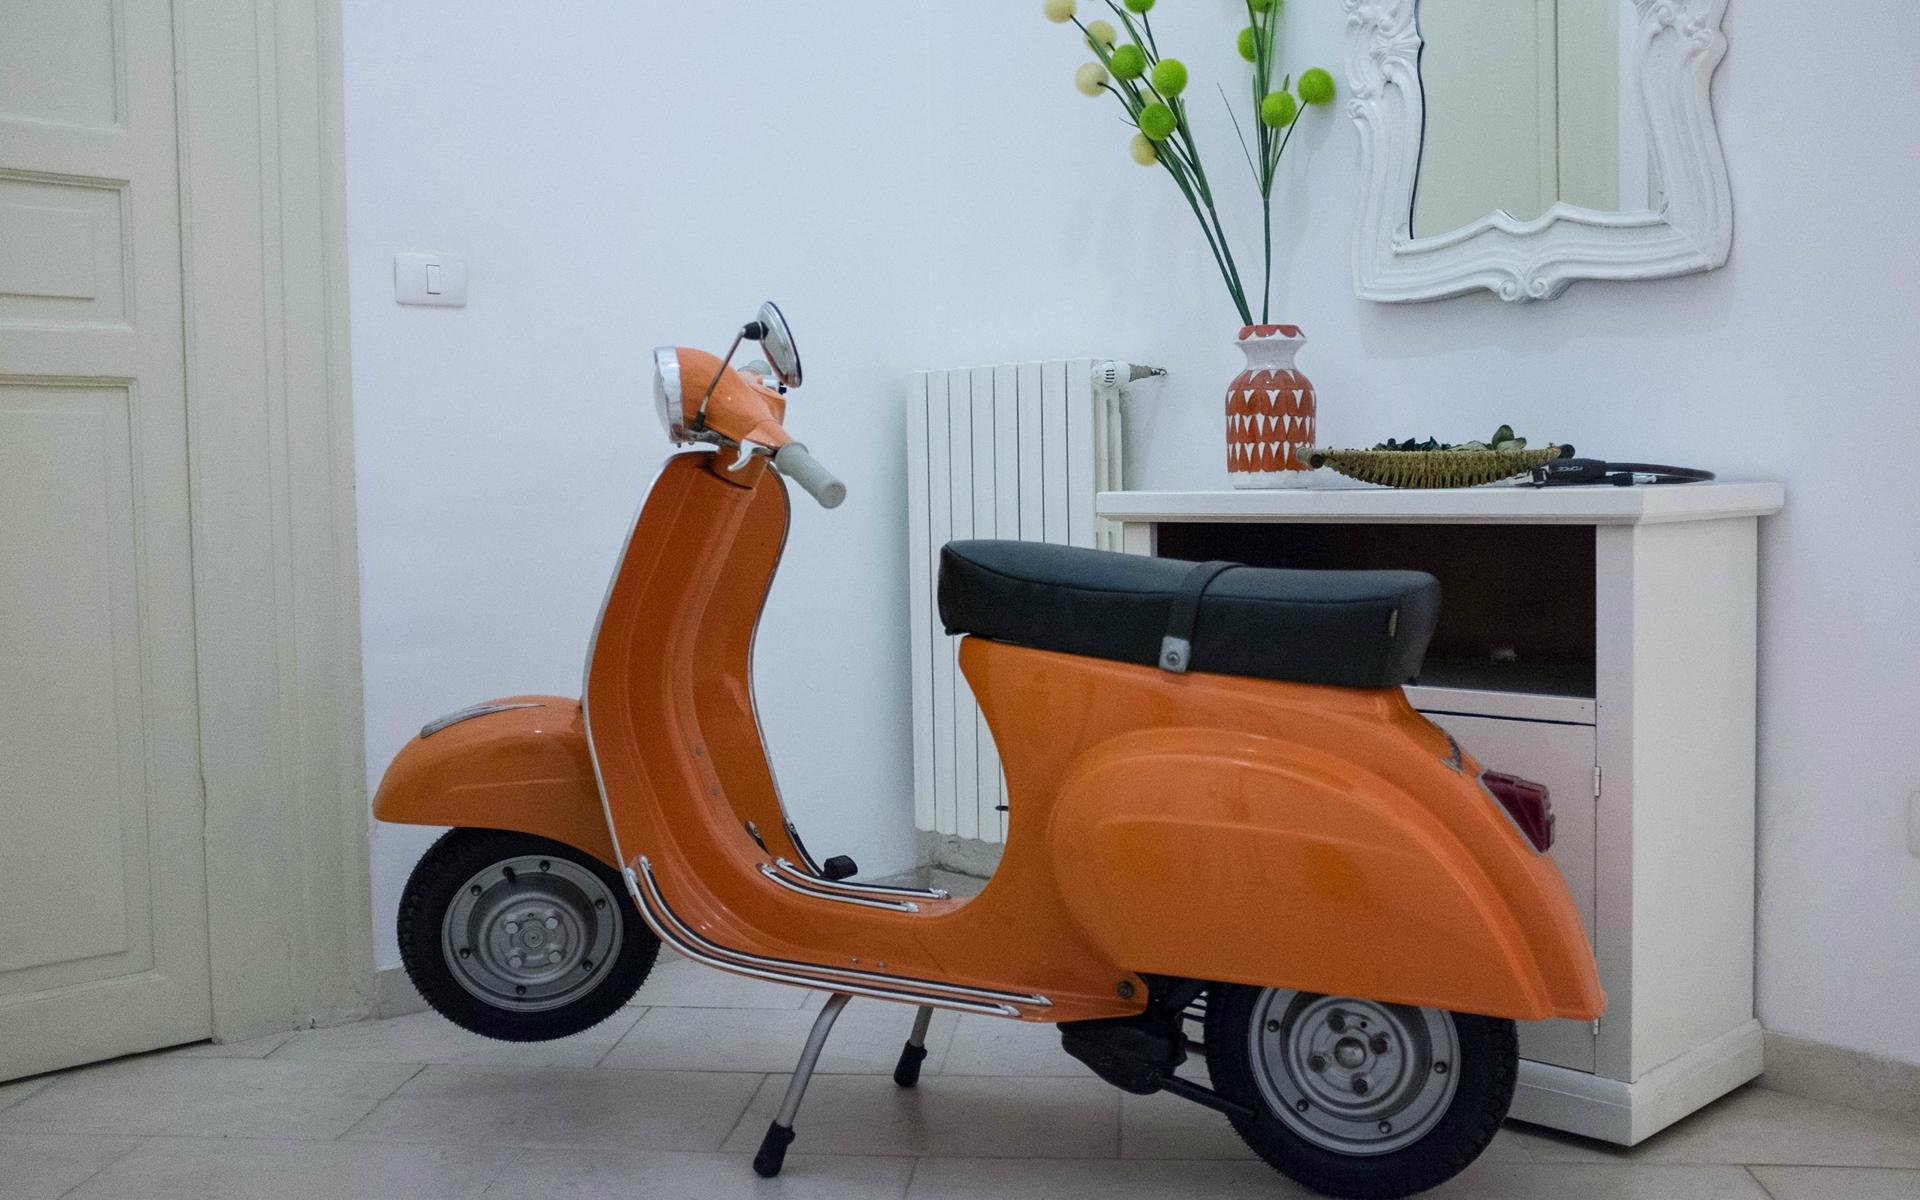 Vespa Bed and Breakfast